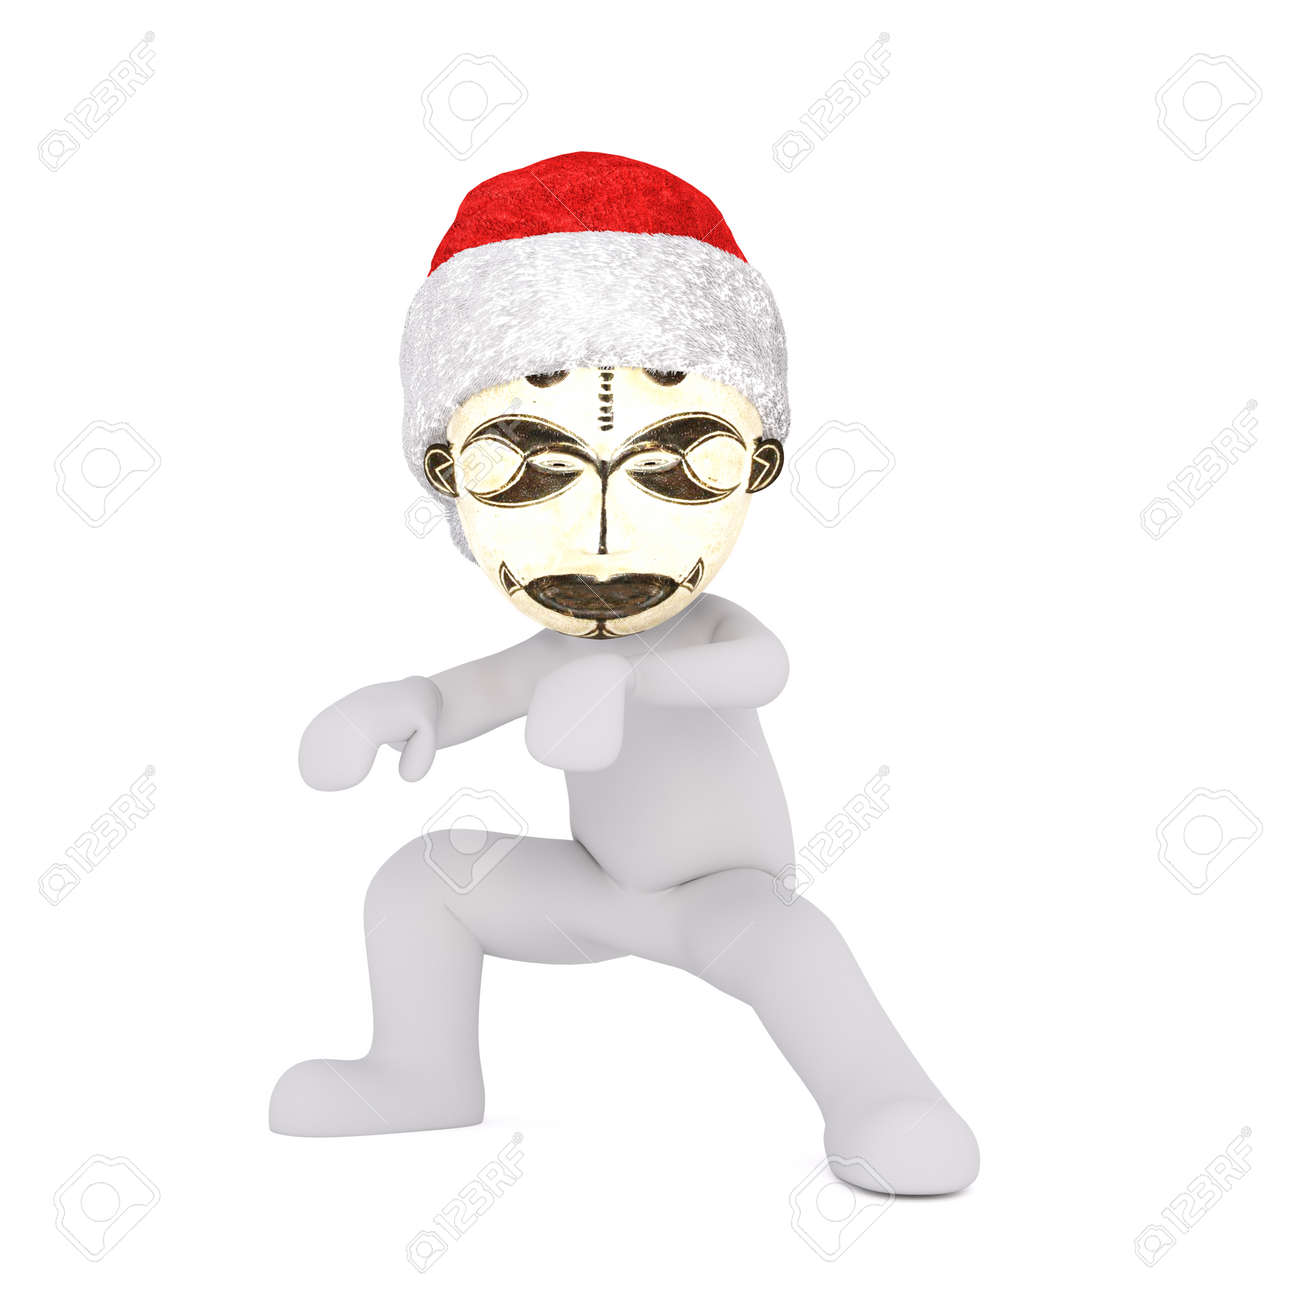 9d0bc46dd1787 Crouching 3D figure wearing tribal mask and santa hat stares at camera  against a white background